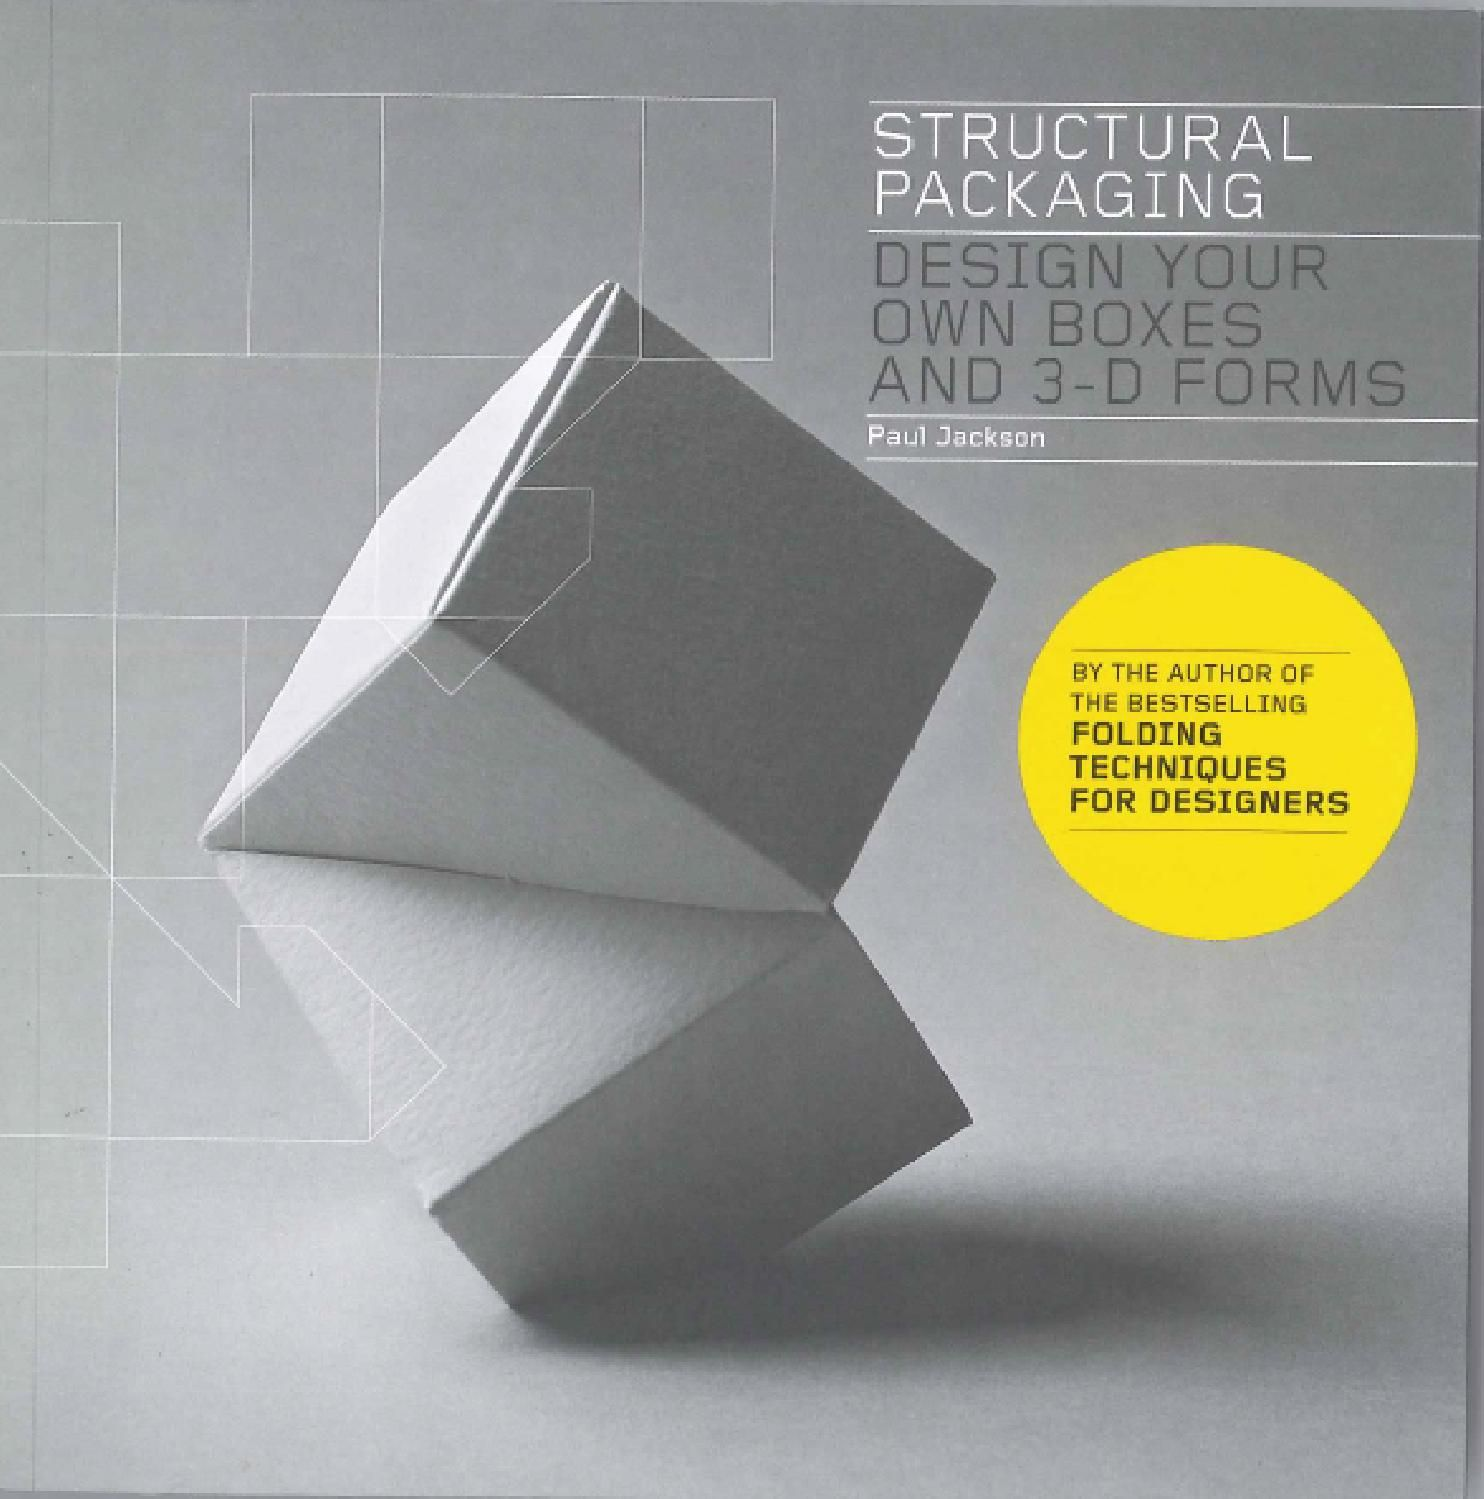 Structural packaging design your own boxes and 3d forms unlike other packaging titles which simply provide templates to copy this book enables designers of all packaging types to create packaging forms that are jeuxipadfo Image collections